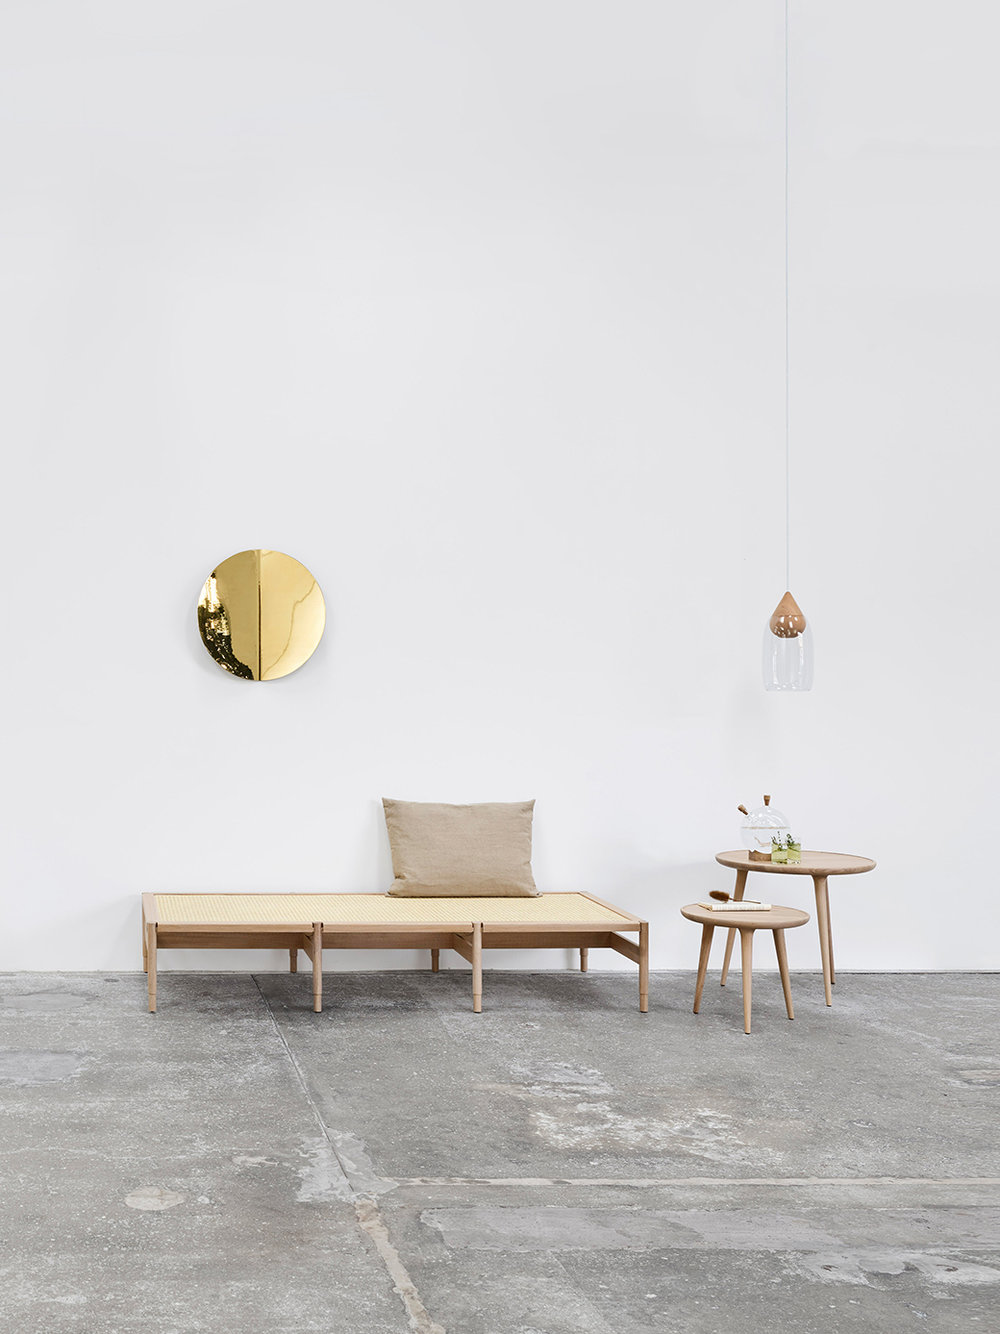 10 Interiors + Lifestyle Things I Love For April